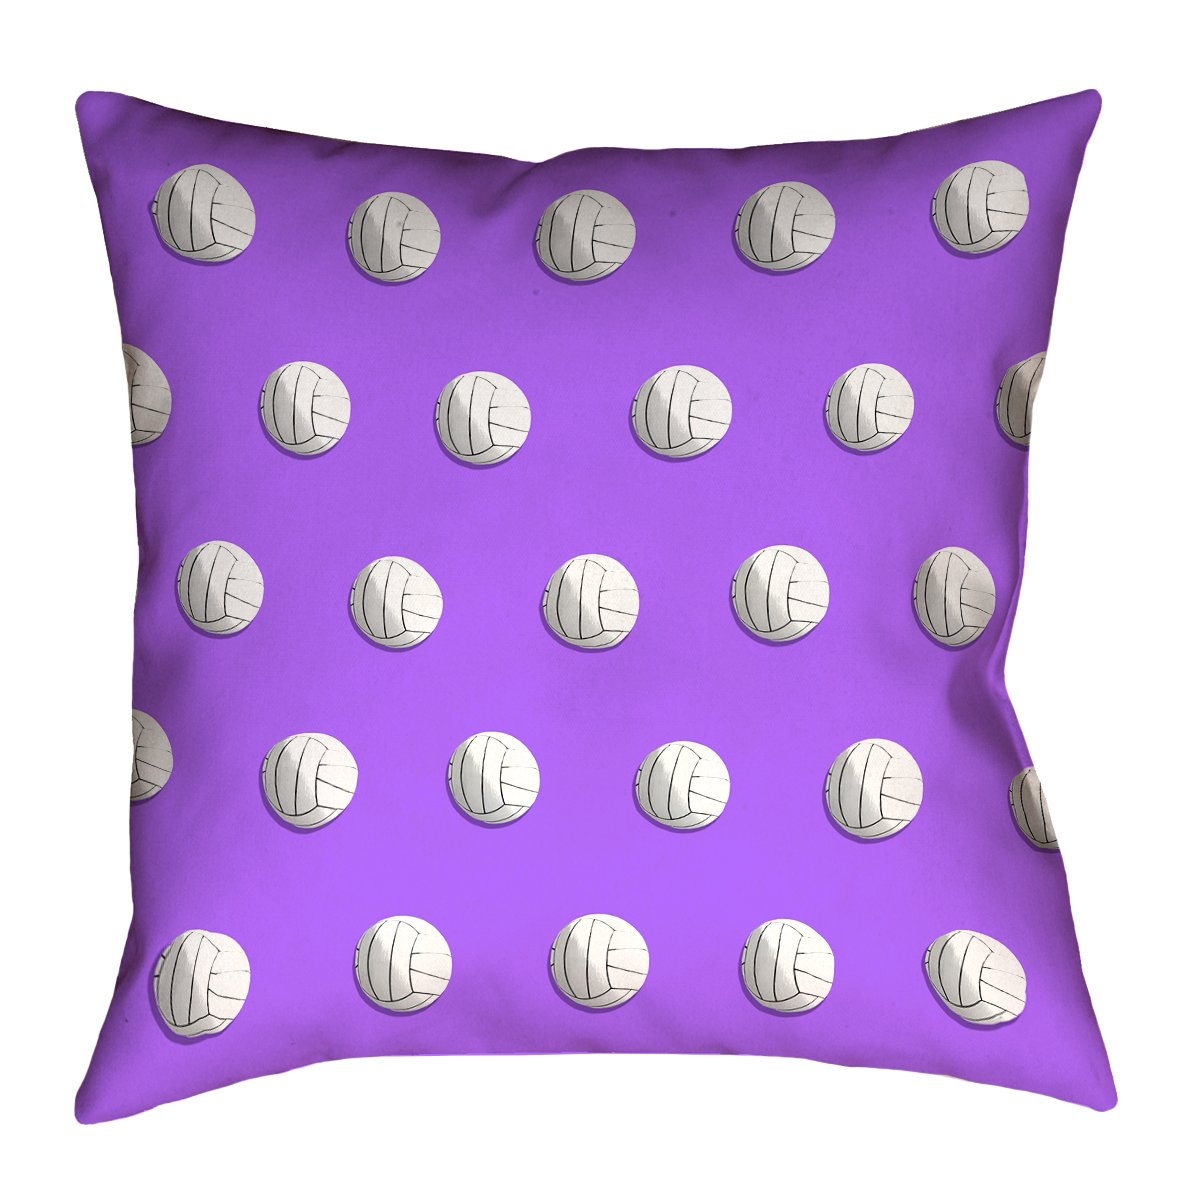 ArtVerse Katelyn Smith 26 x 26 Cotton Twill Double Sided Print with Concealed Zipper /& Insert Purple Volleyball Pillow